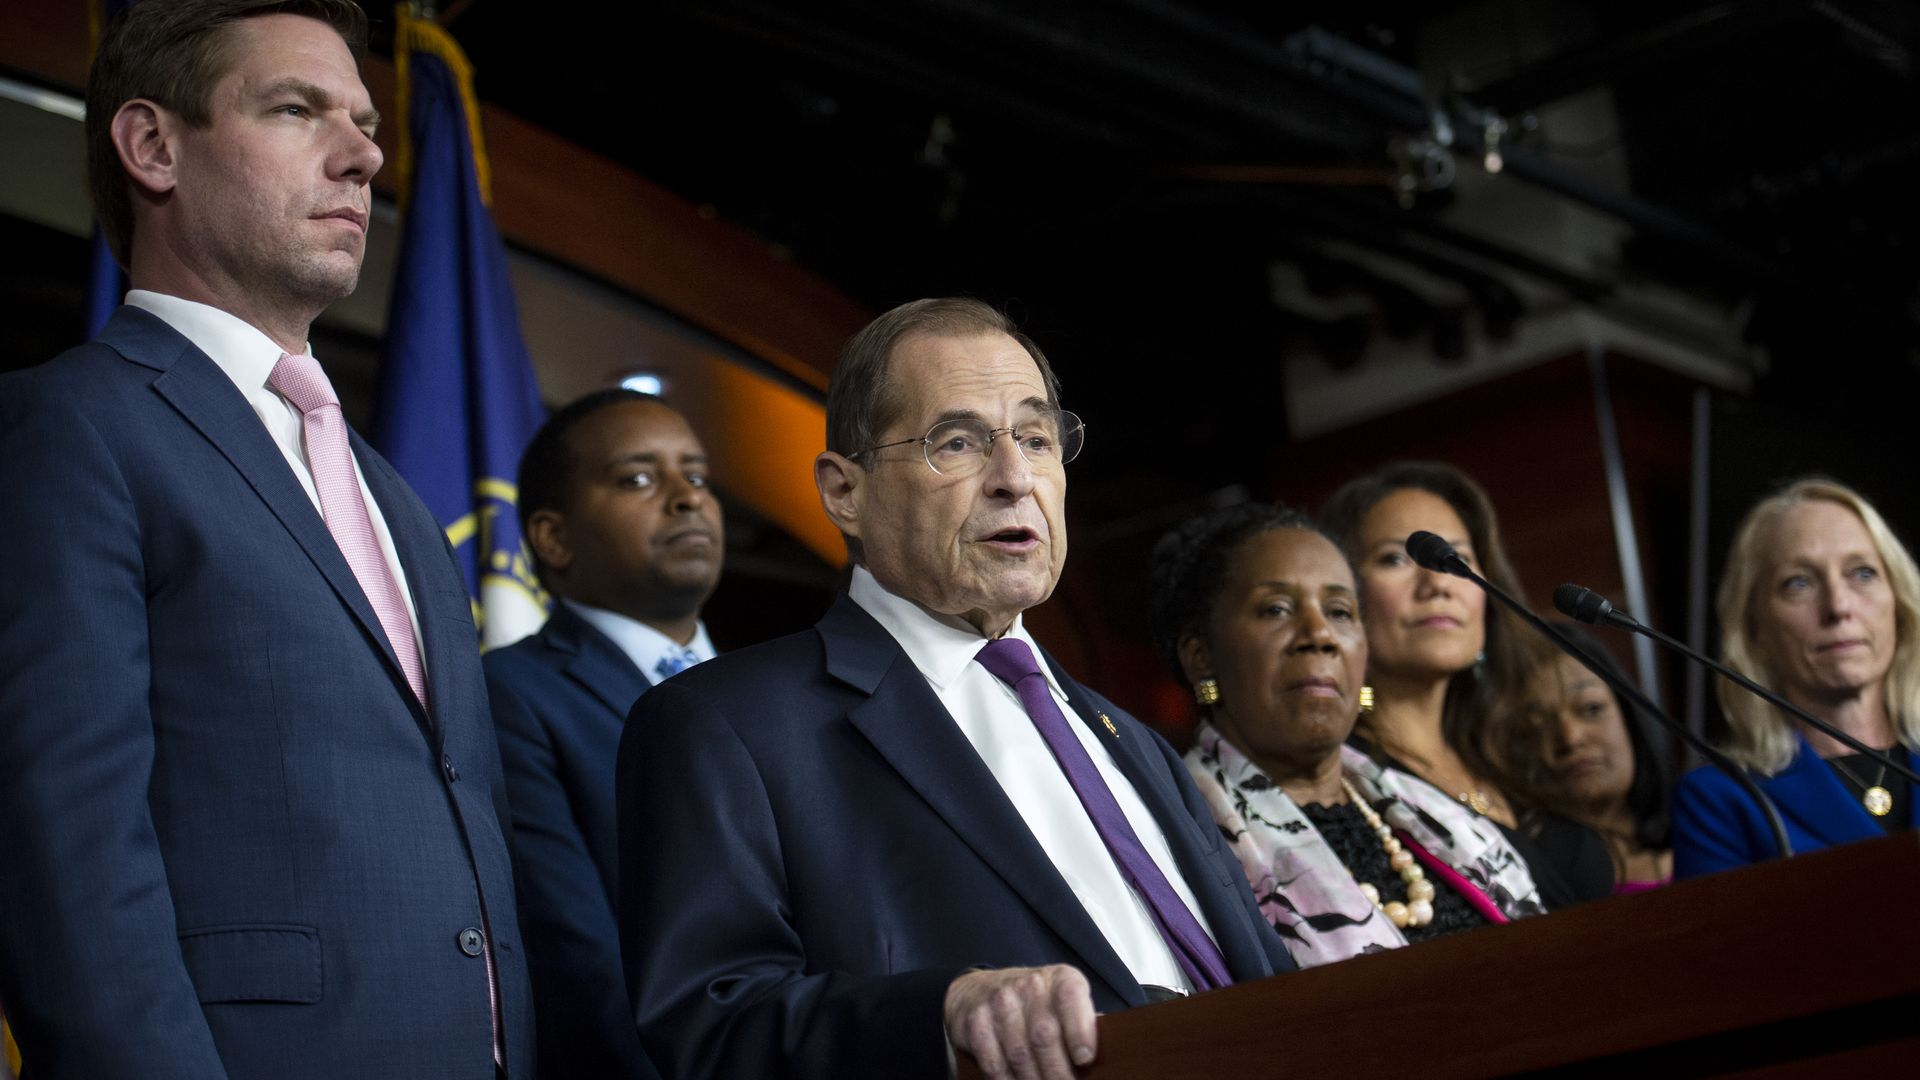 This image shows Nadler standing behind a podium and speaking at a press briefing.